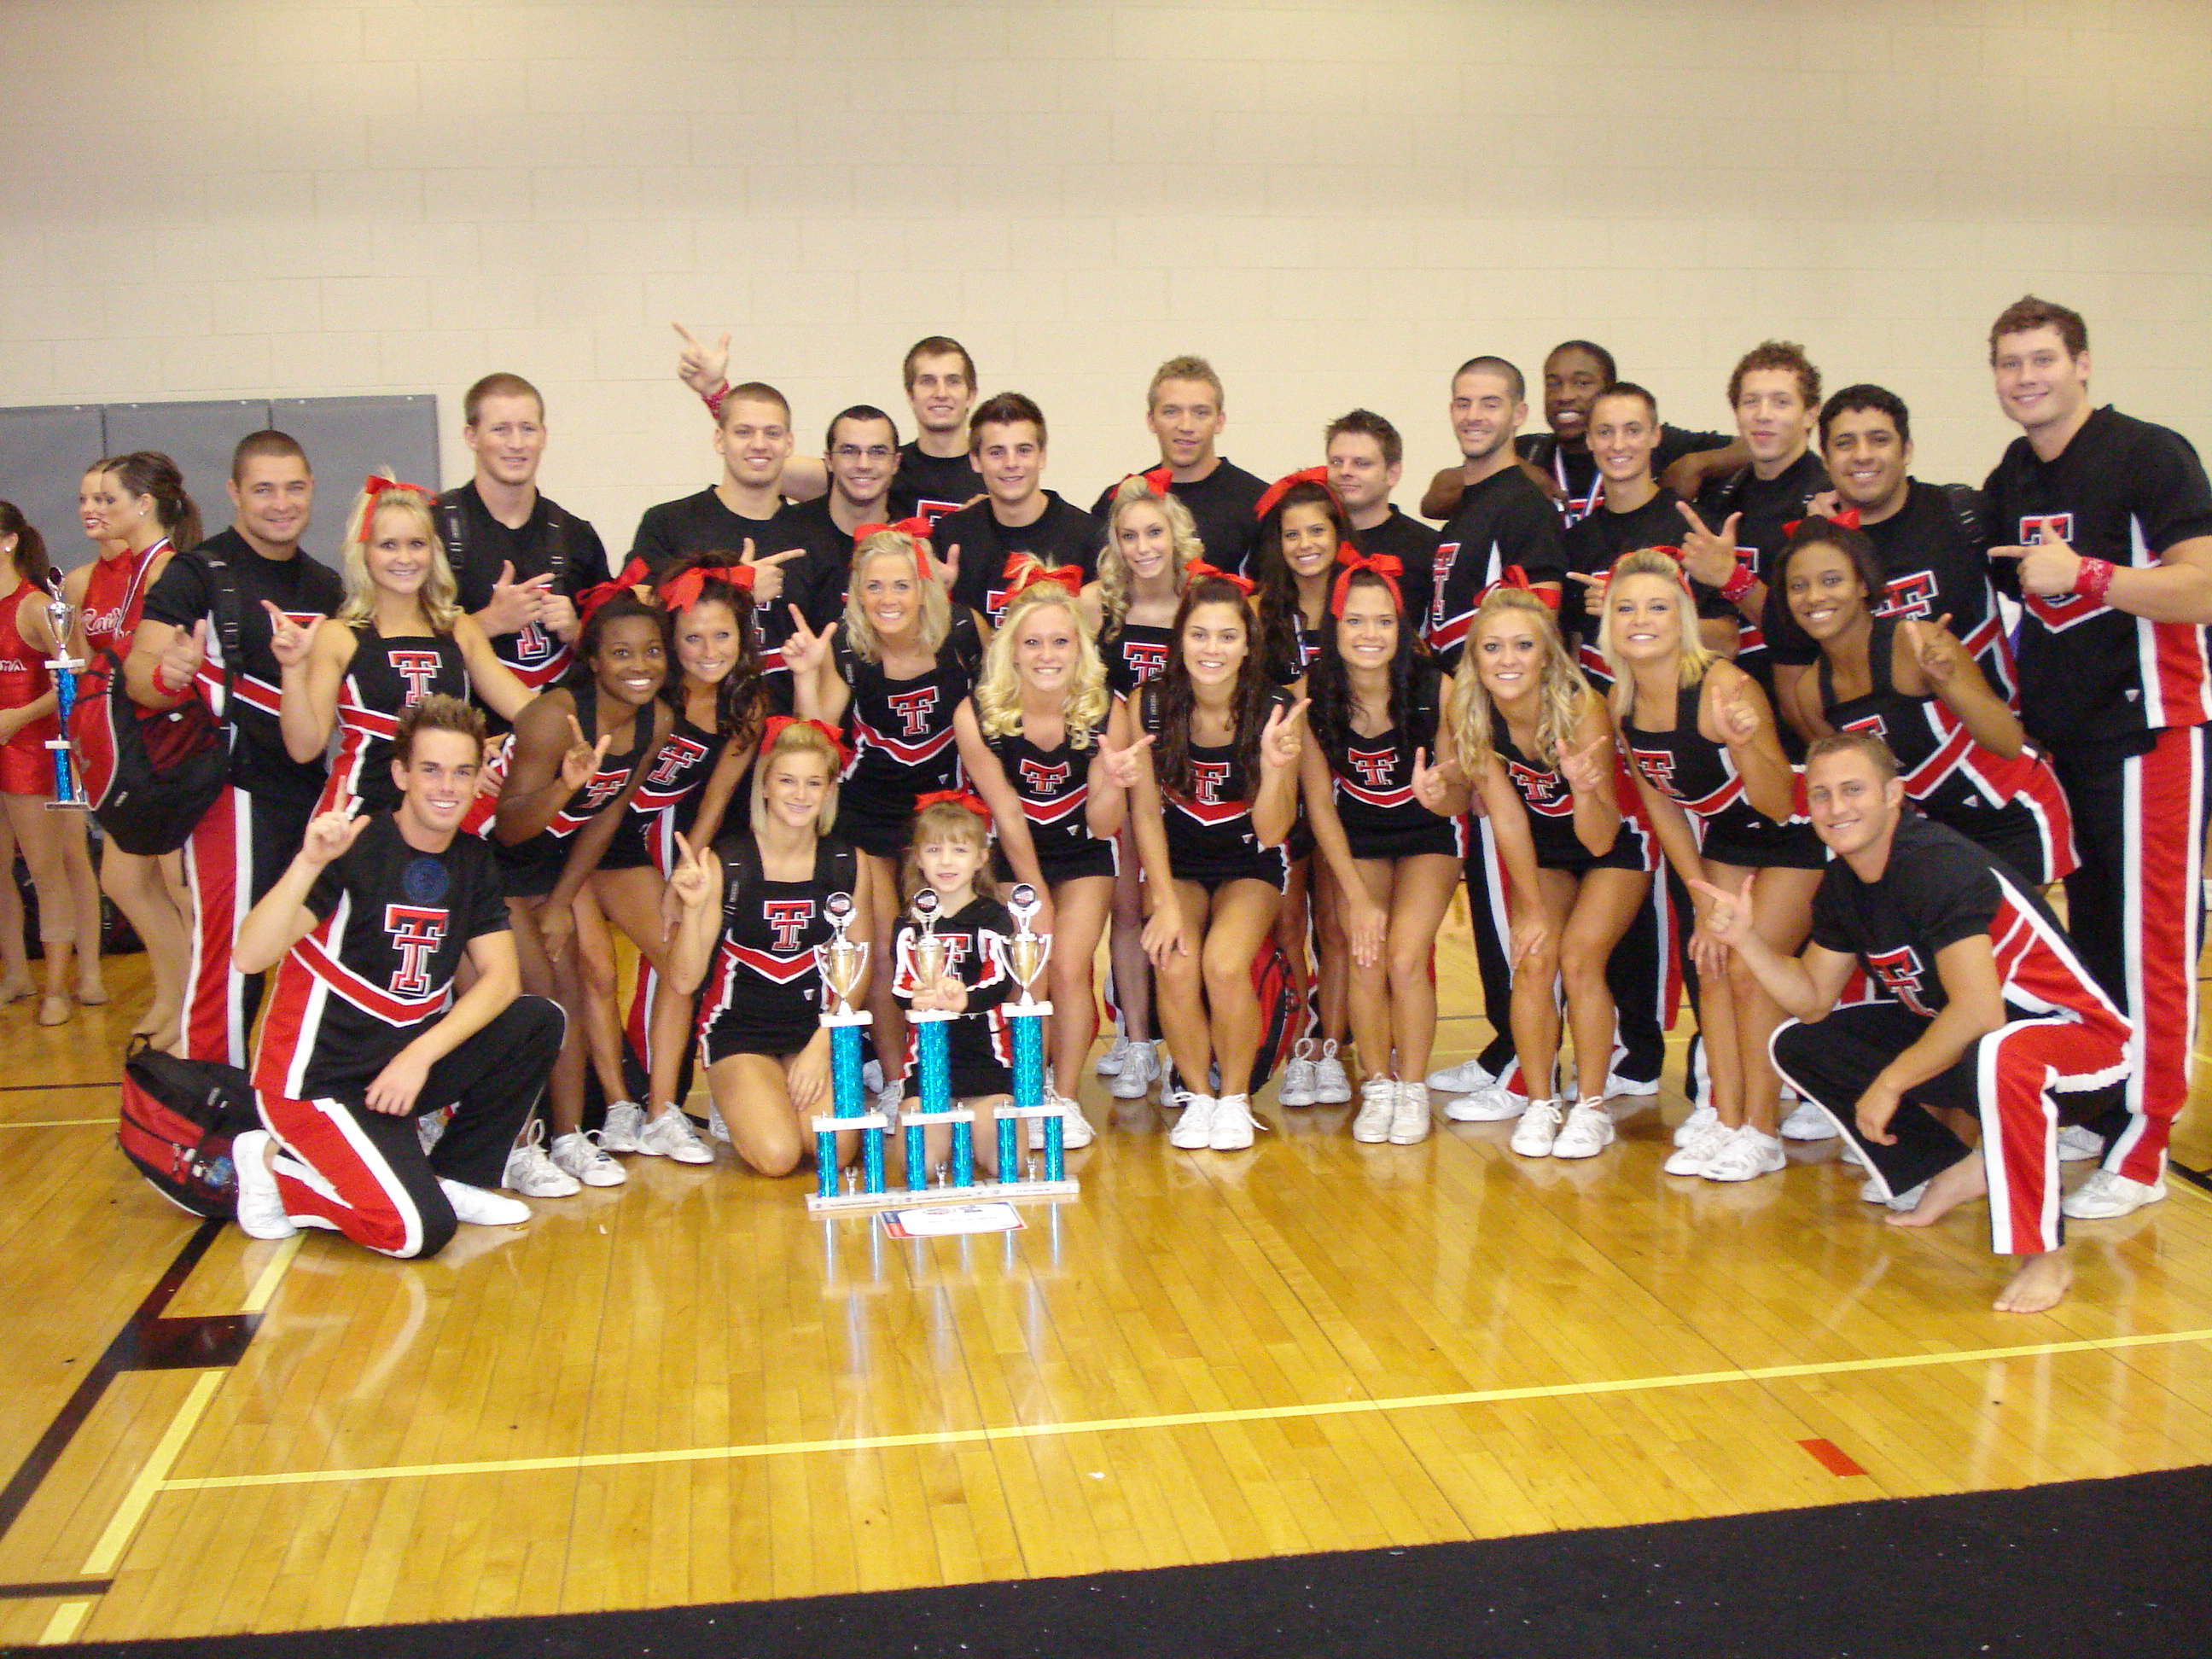 The Texas Tech Cheerleaders Finished With Top Overall Score And Won Title Of Most